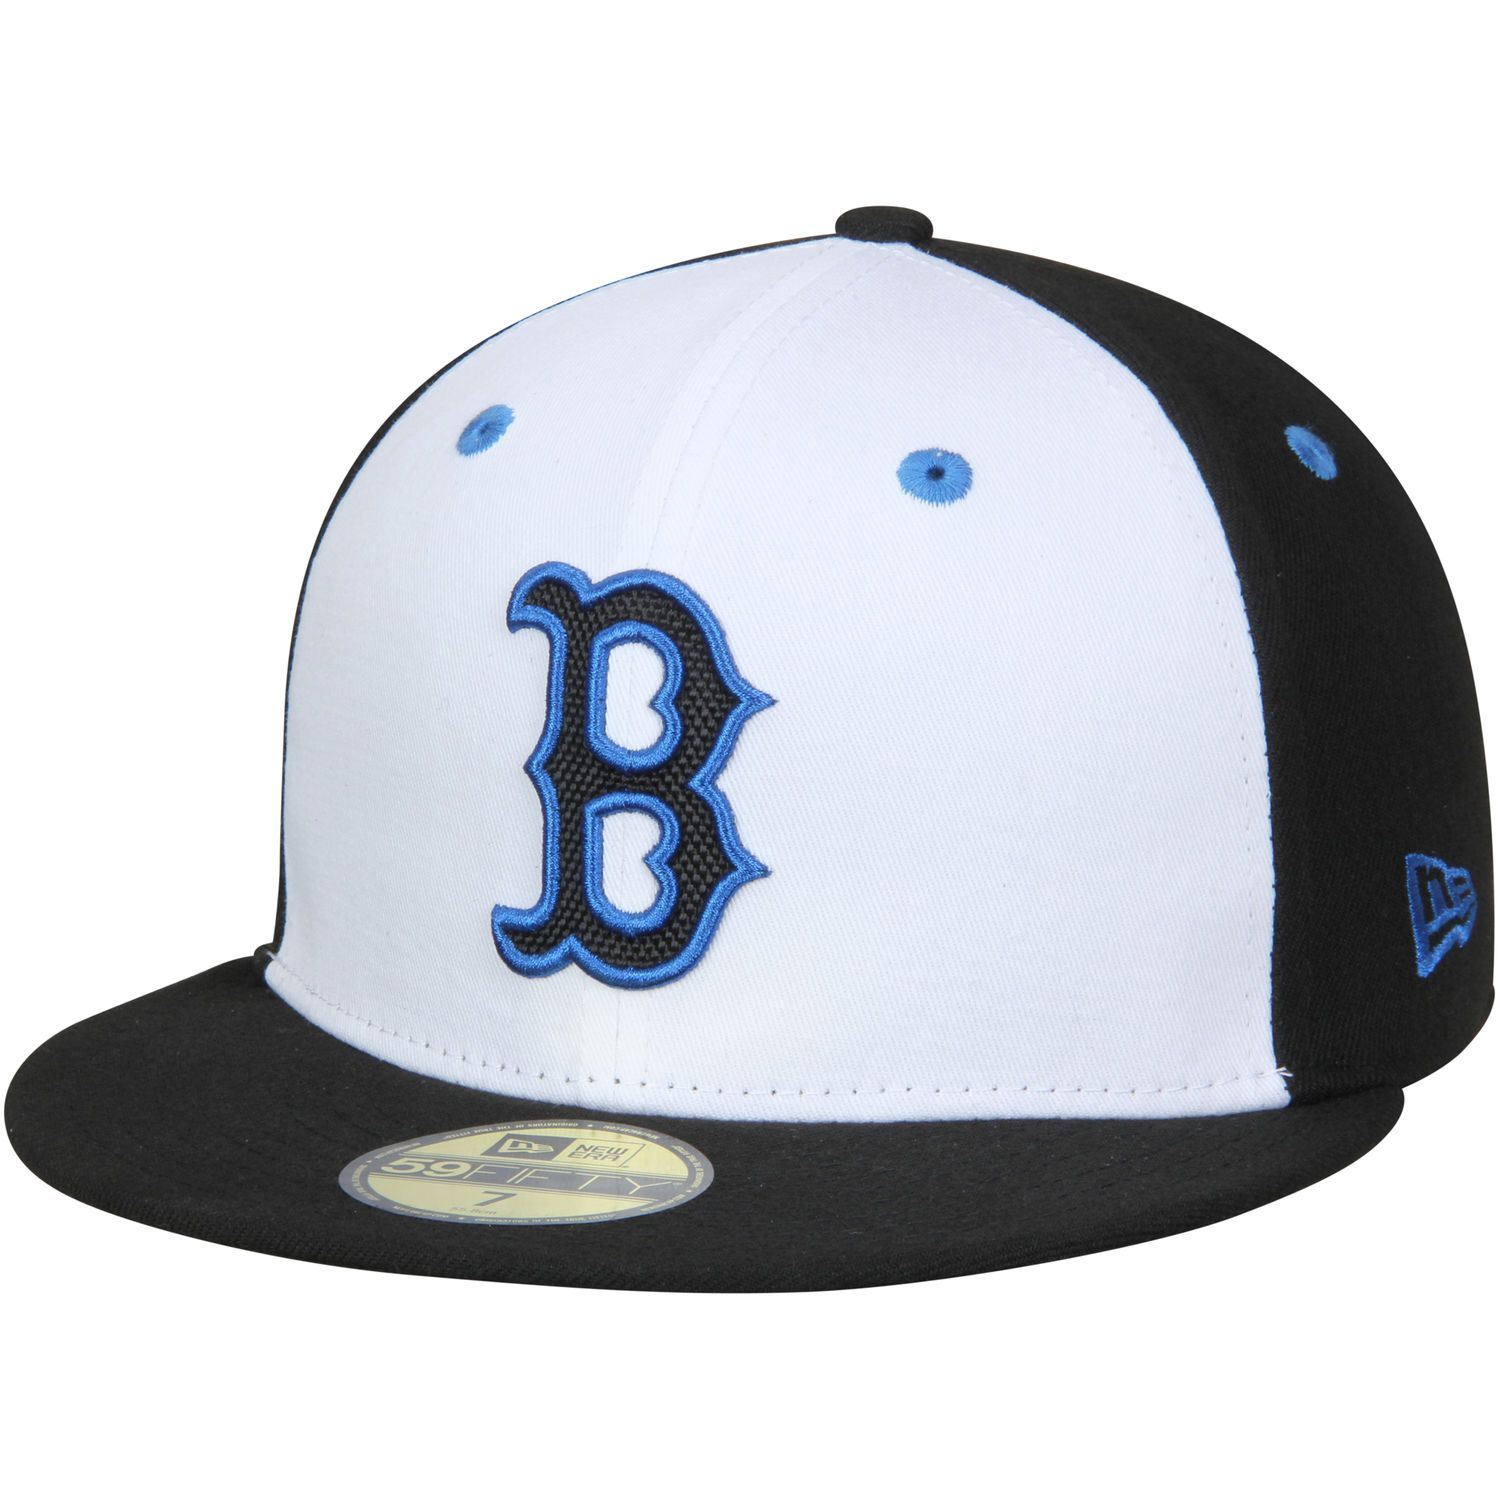 341d5e36c8b czech mookie betts boston red sox new era player designed program 59fifty  fitted hat white black